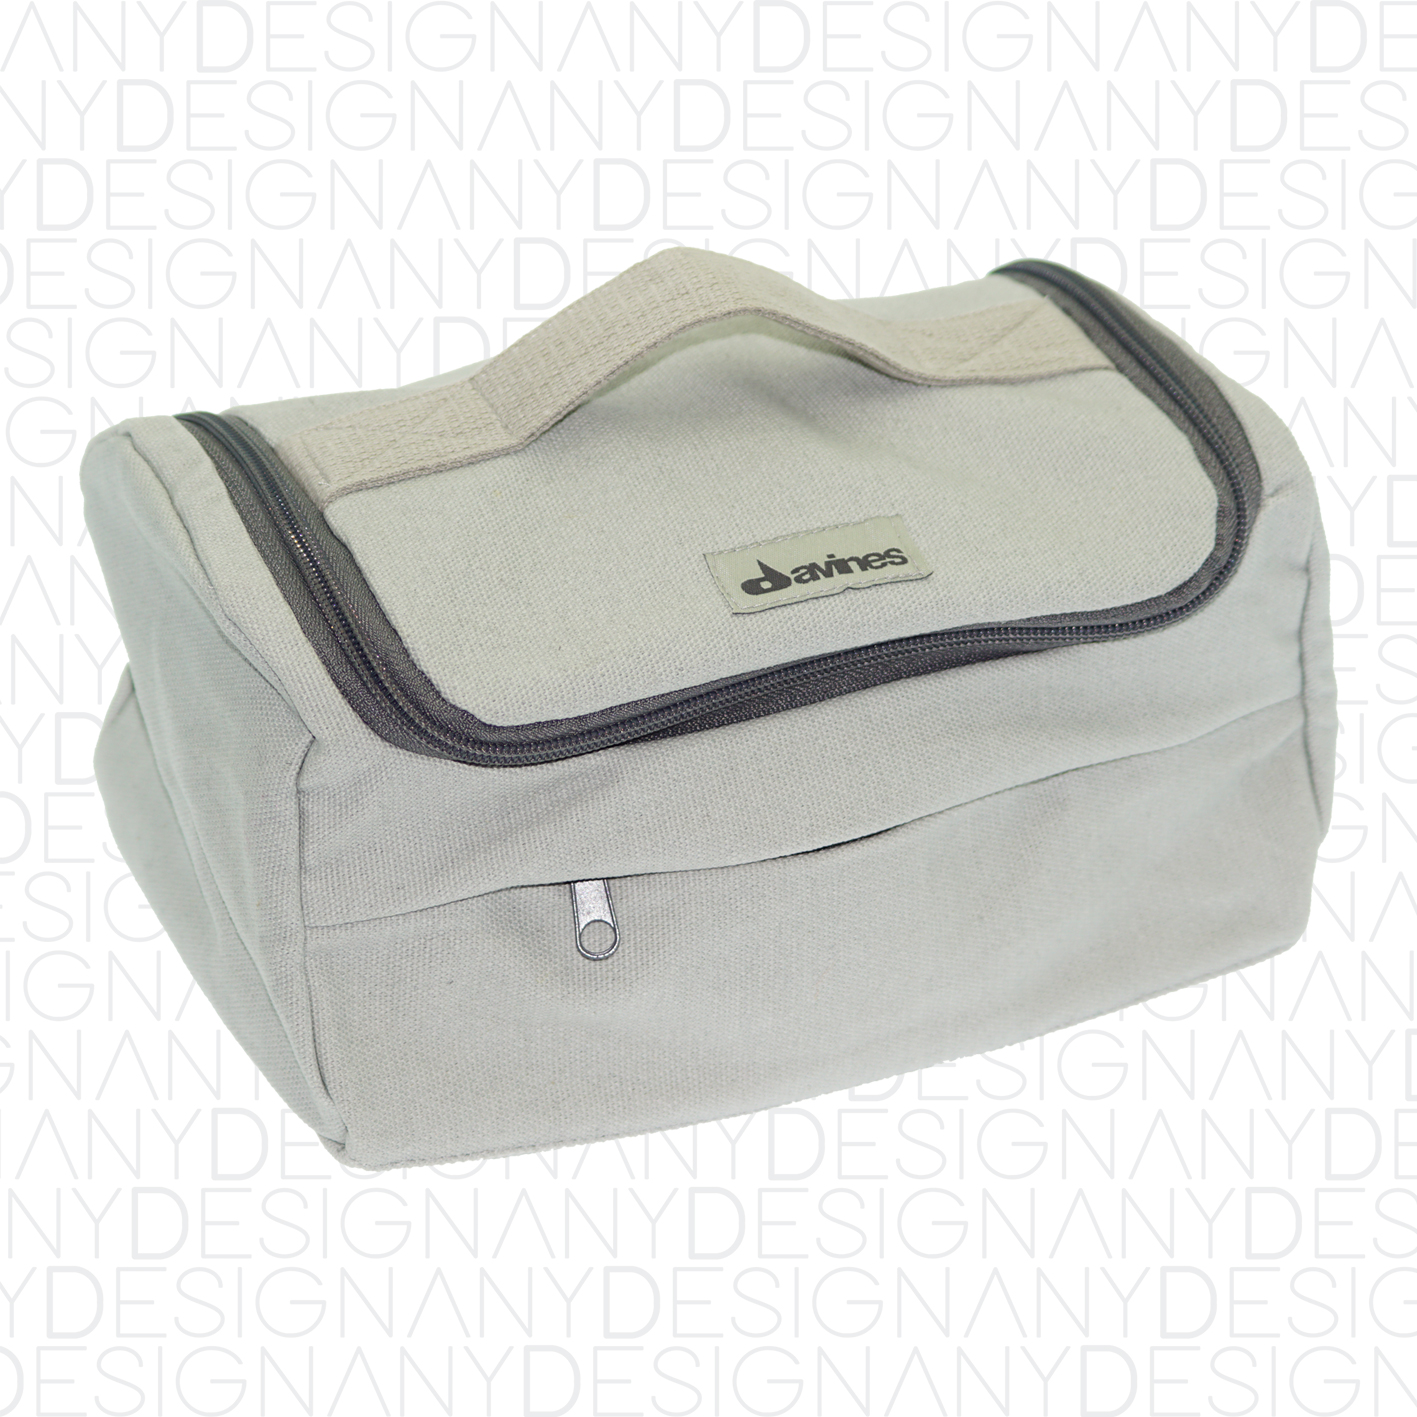 BEAUTYCASE_CANVAS_COTONE